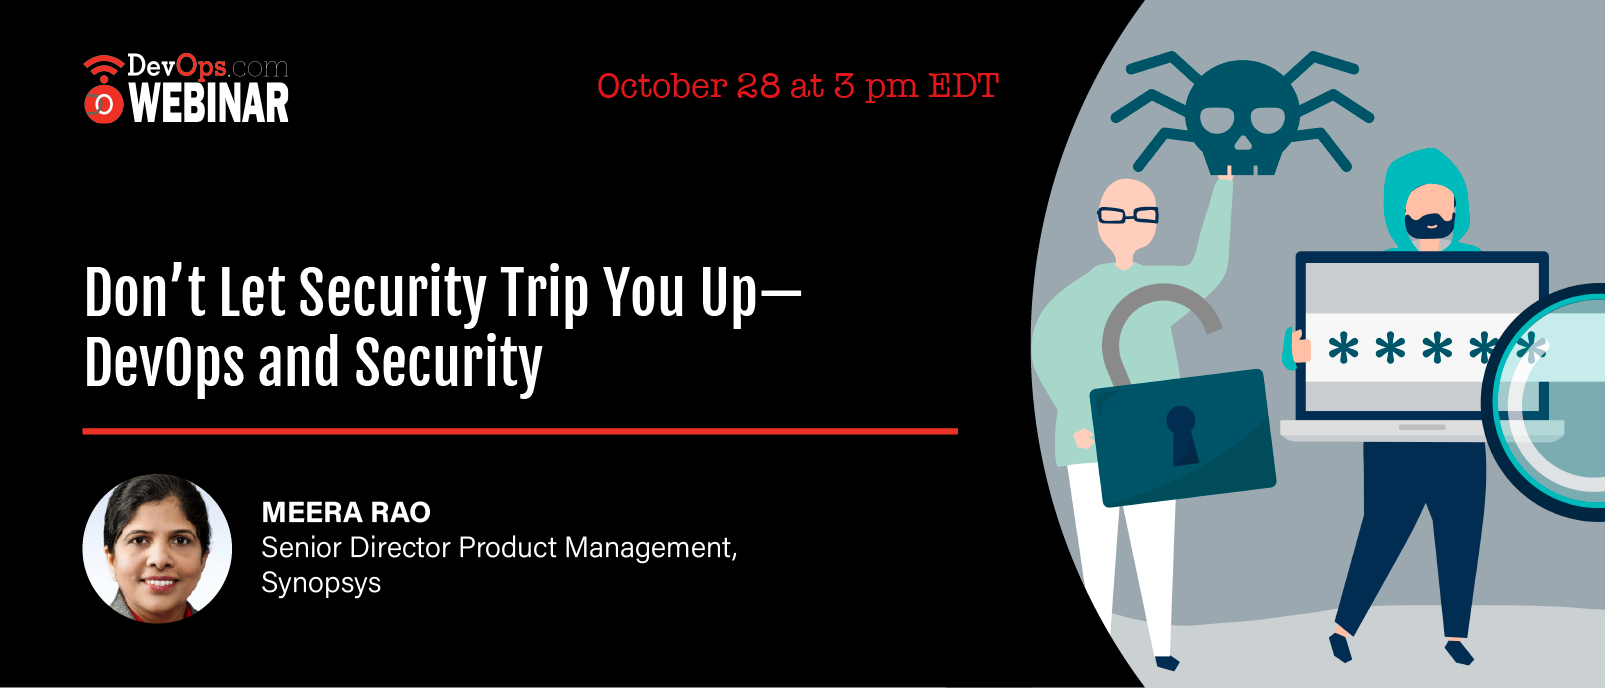 Don't Let Security Trip You Up—DevOps and Security